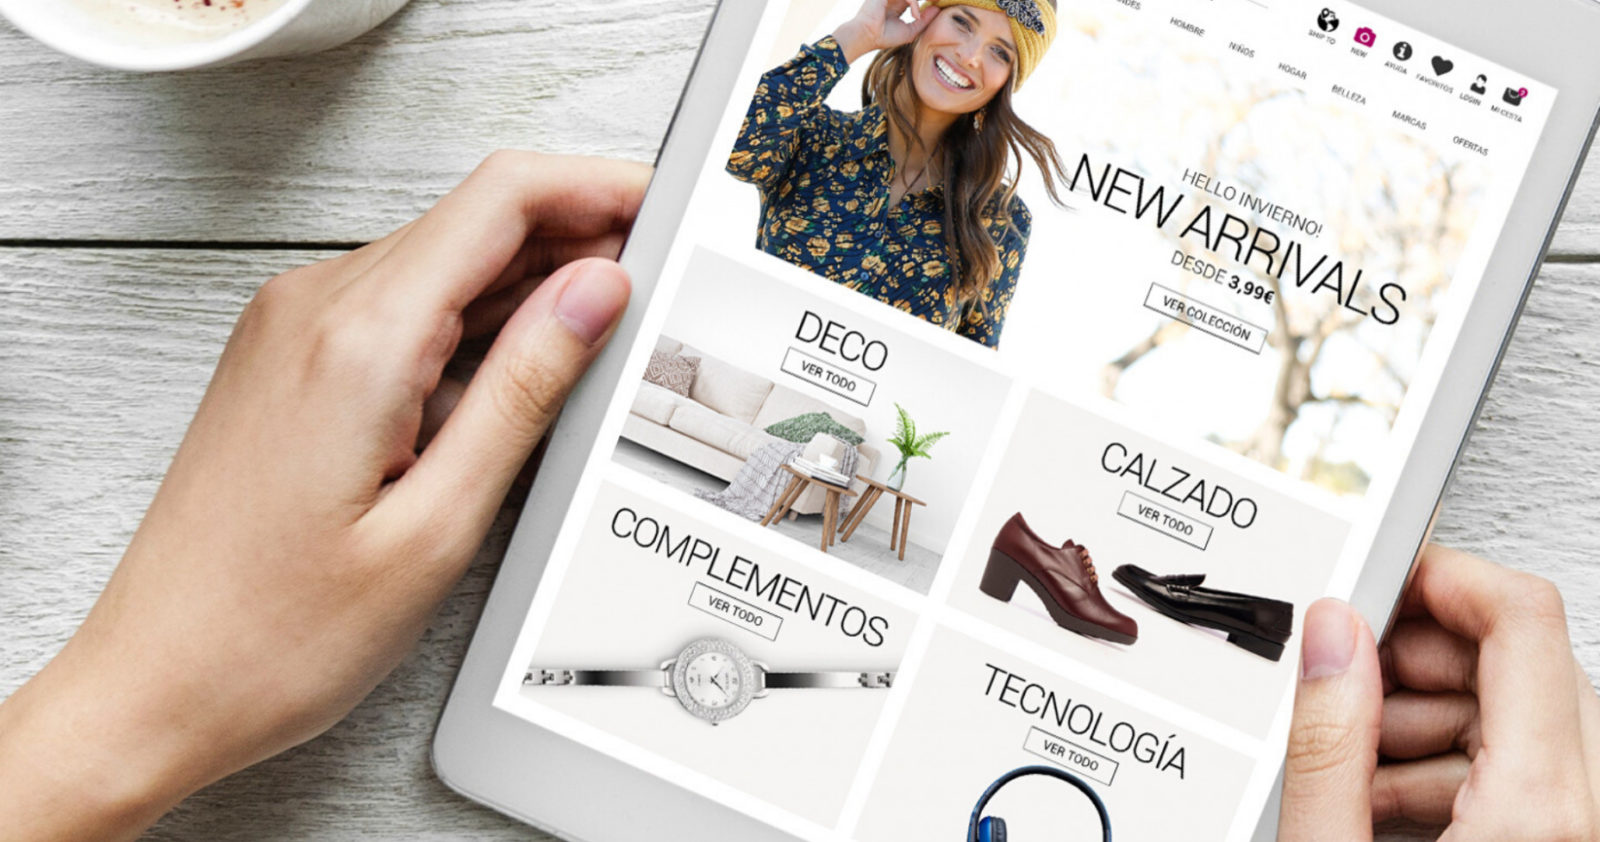 Venca ecommerce - digital transformation in the retail industry